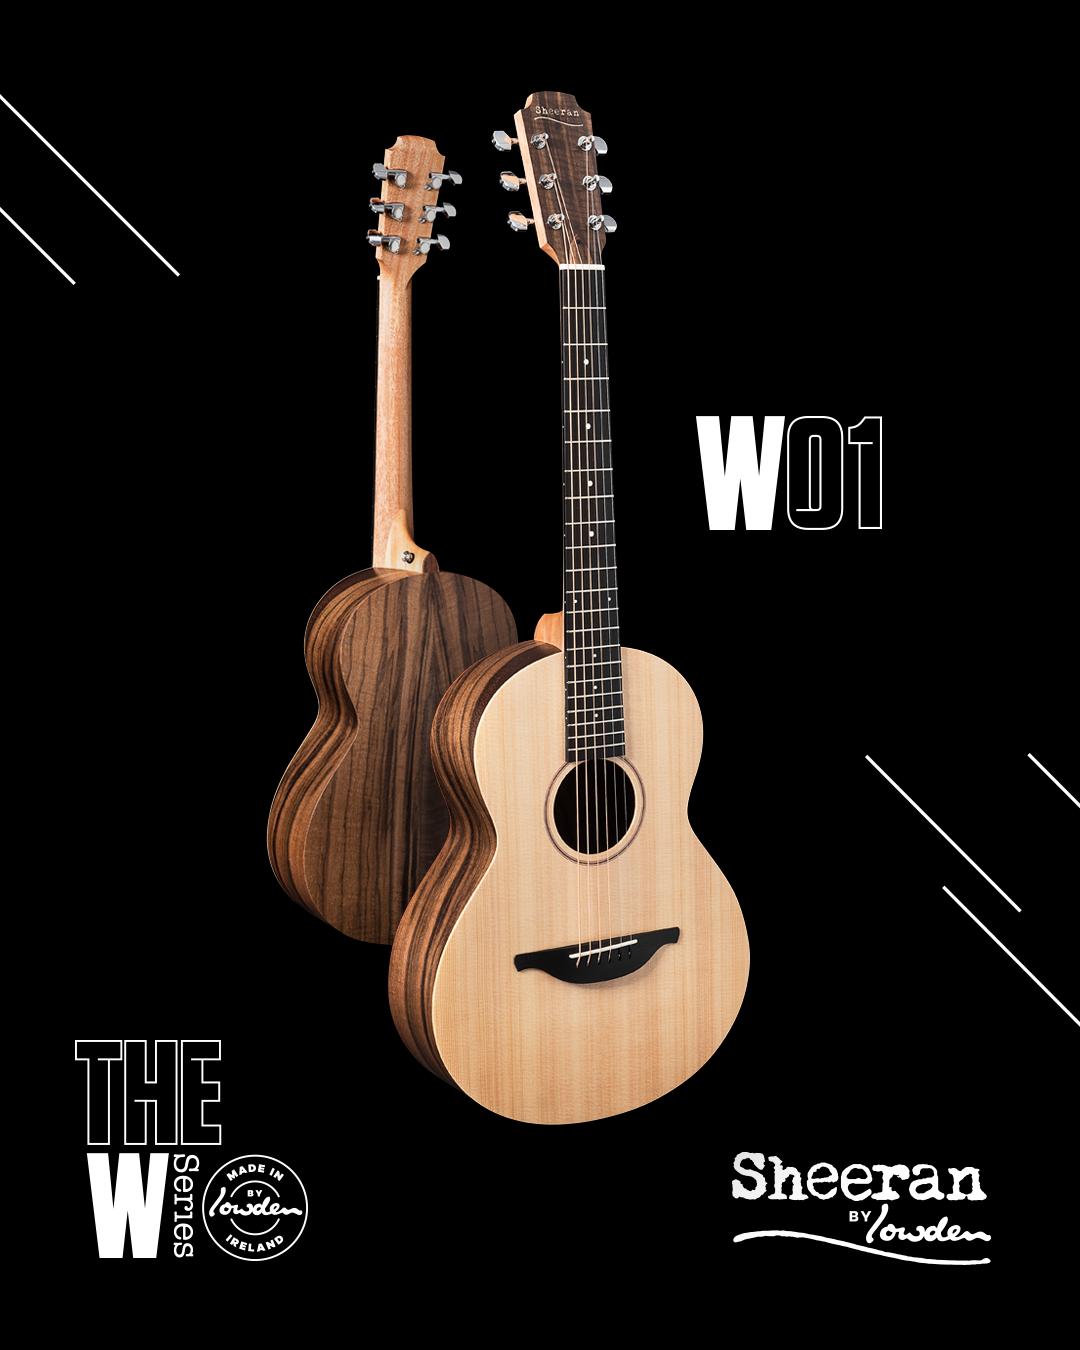 Sheeran by Lowden W-01 Cedar/Walnut Guitar (PRE ORDER)